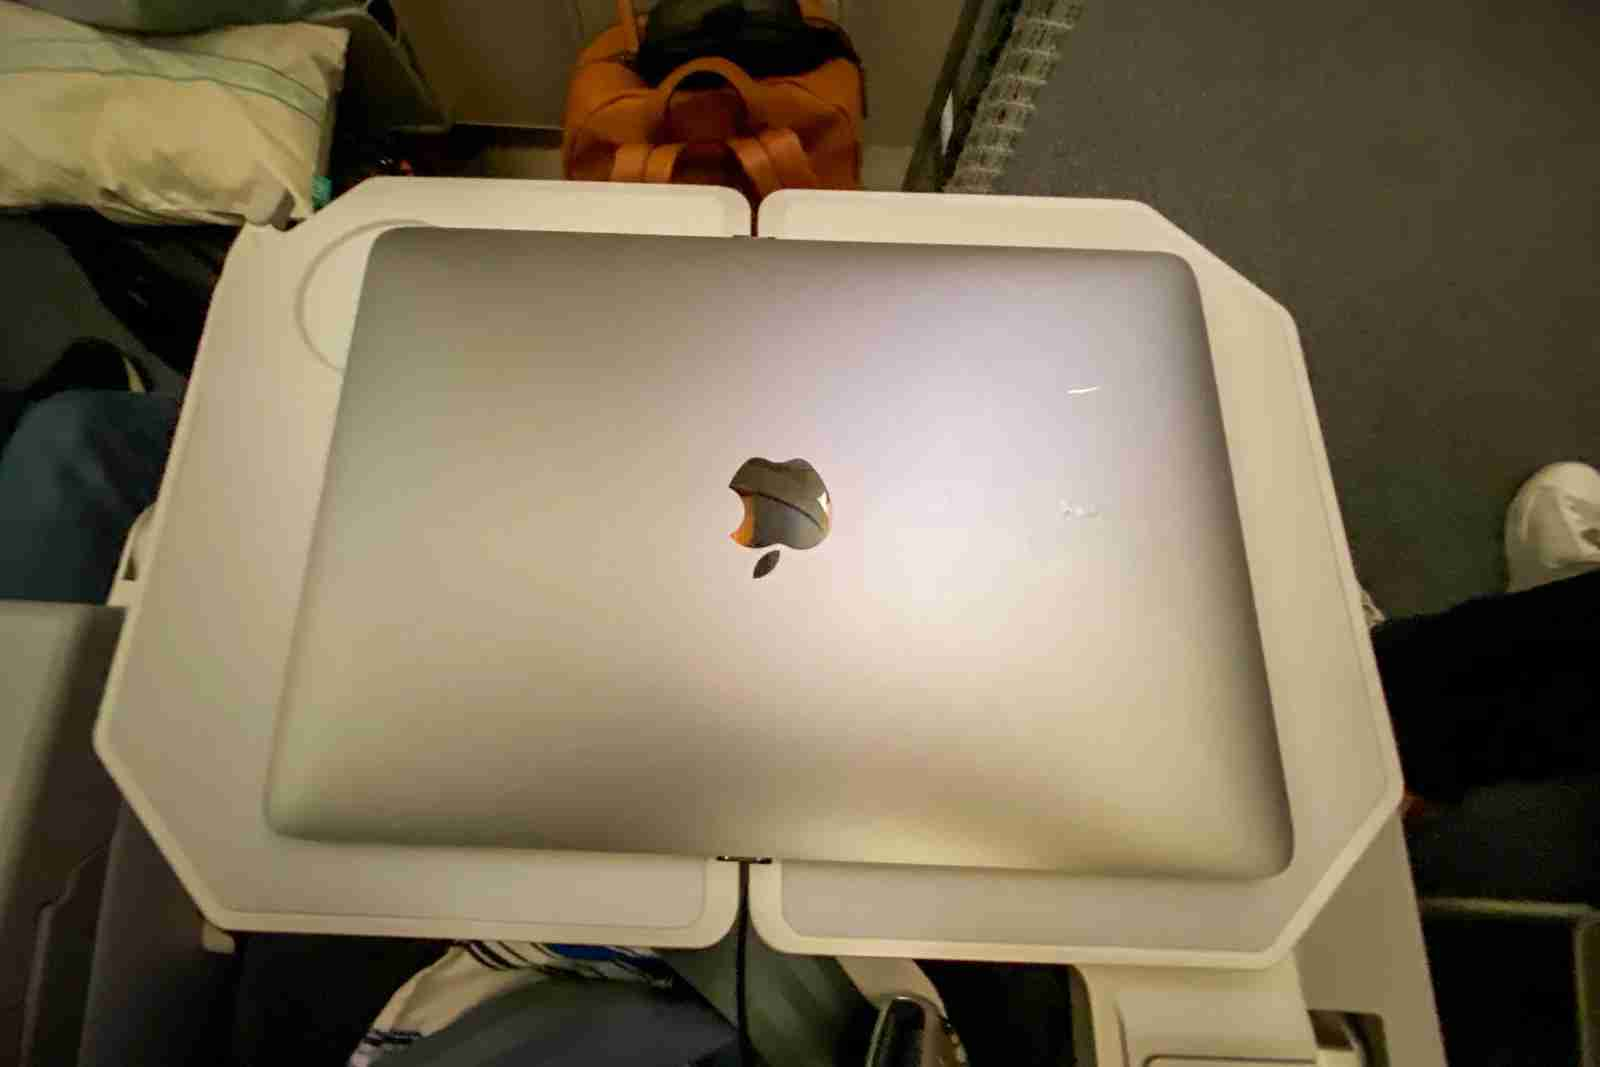 """My 12"""" Mac on the foldable tray table (Photo by Chris Dong/The Points Guy)"""